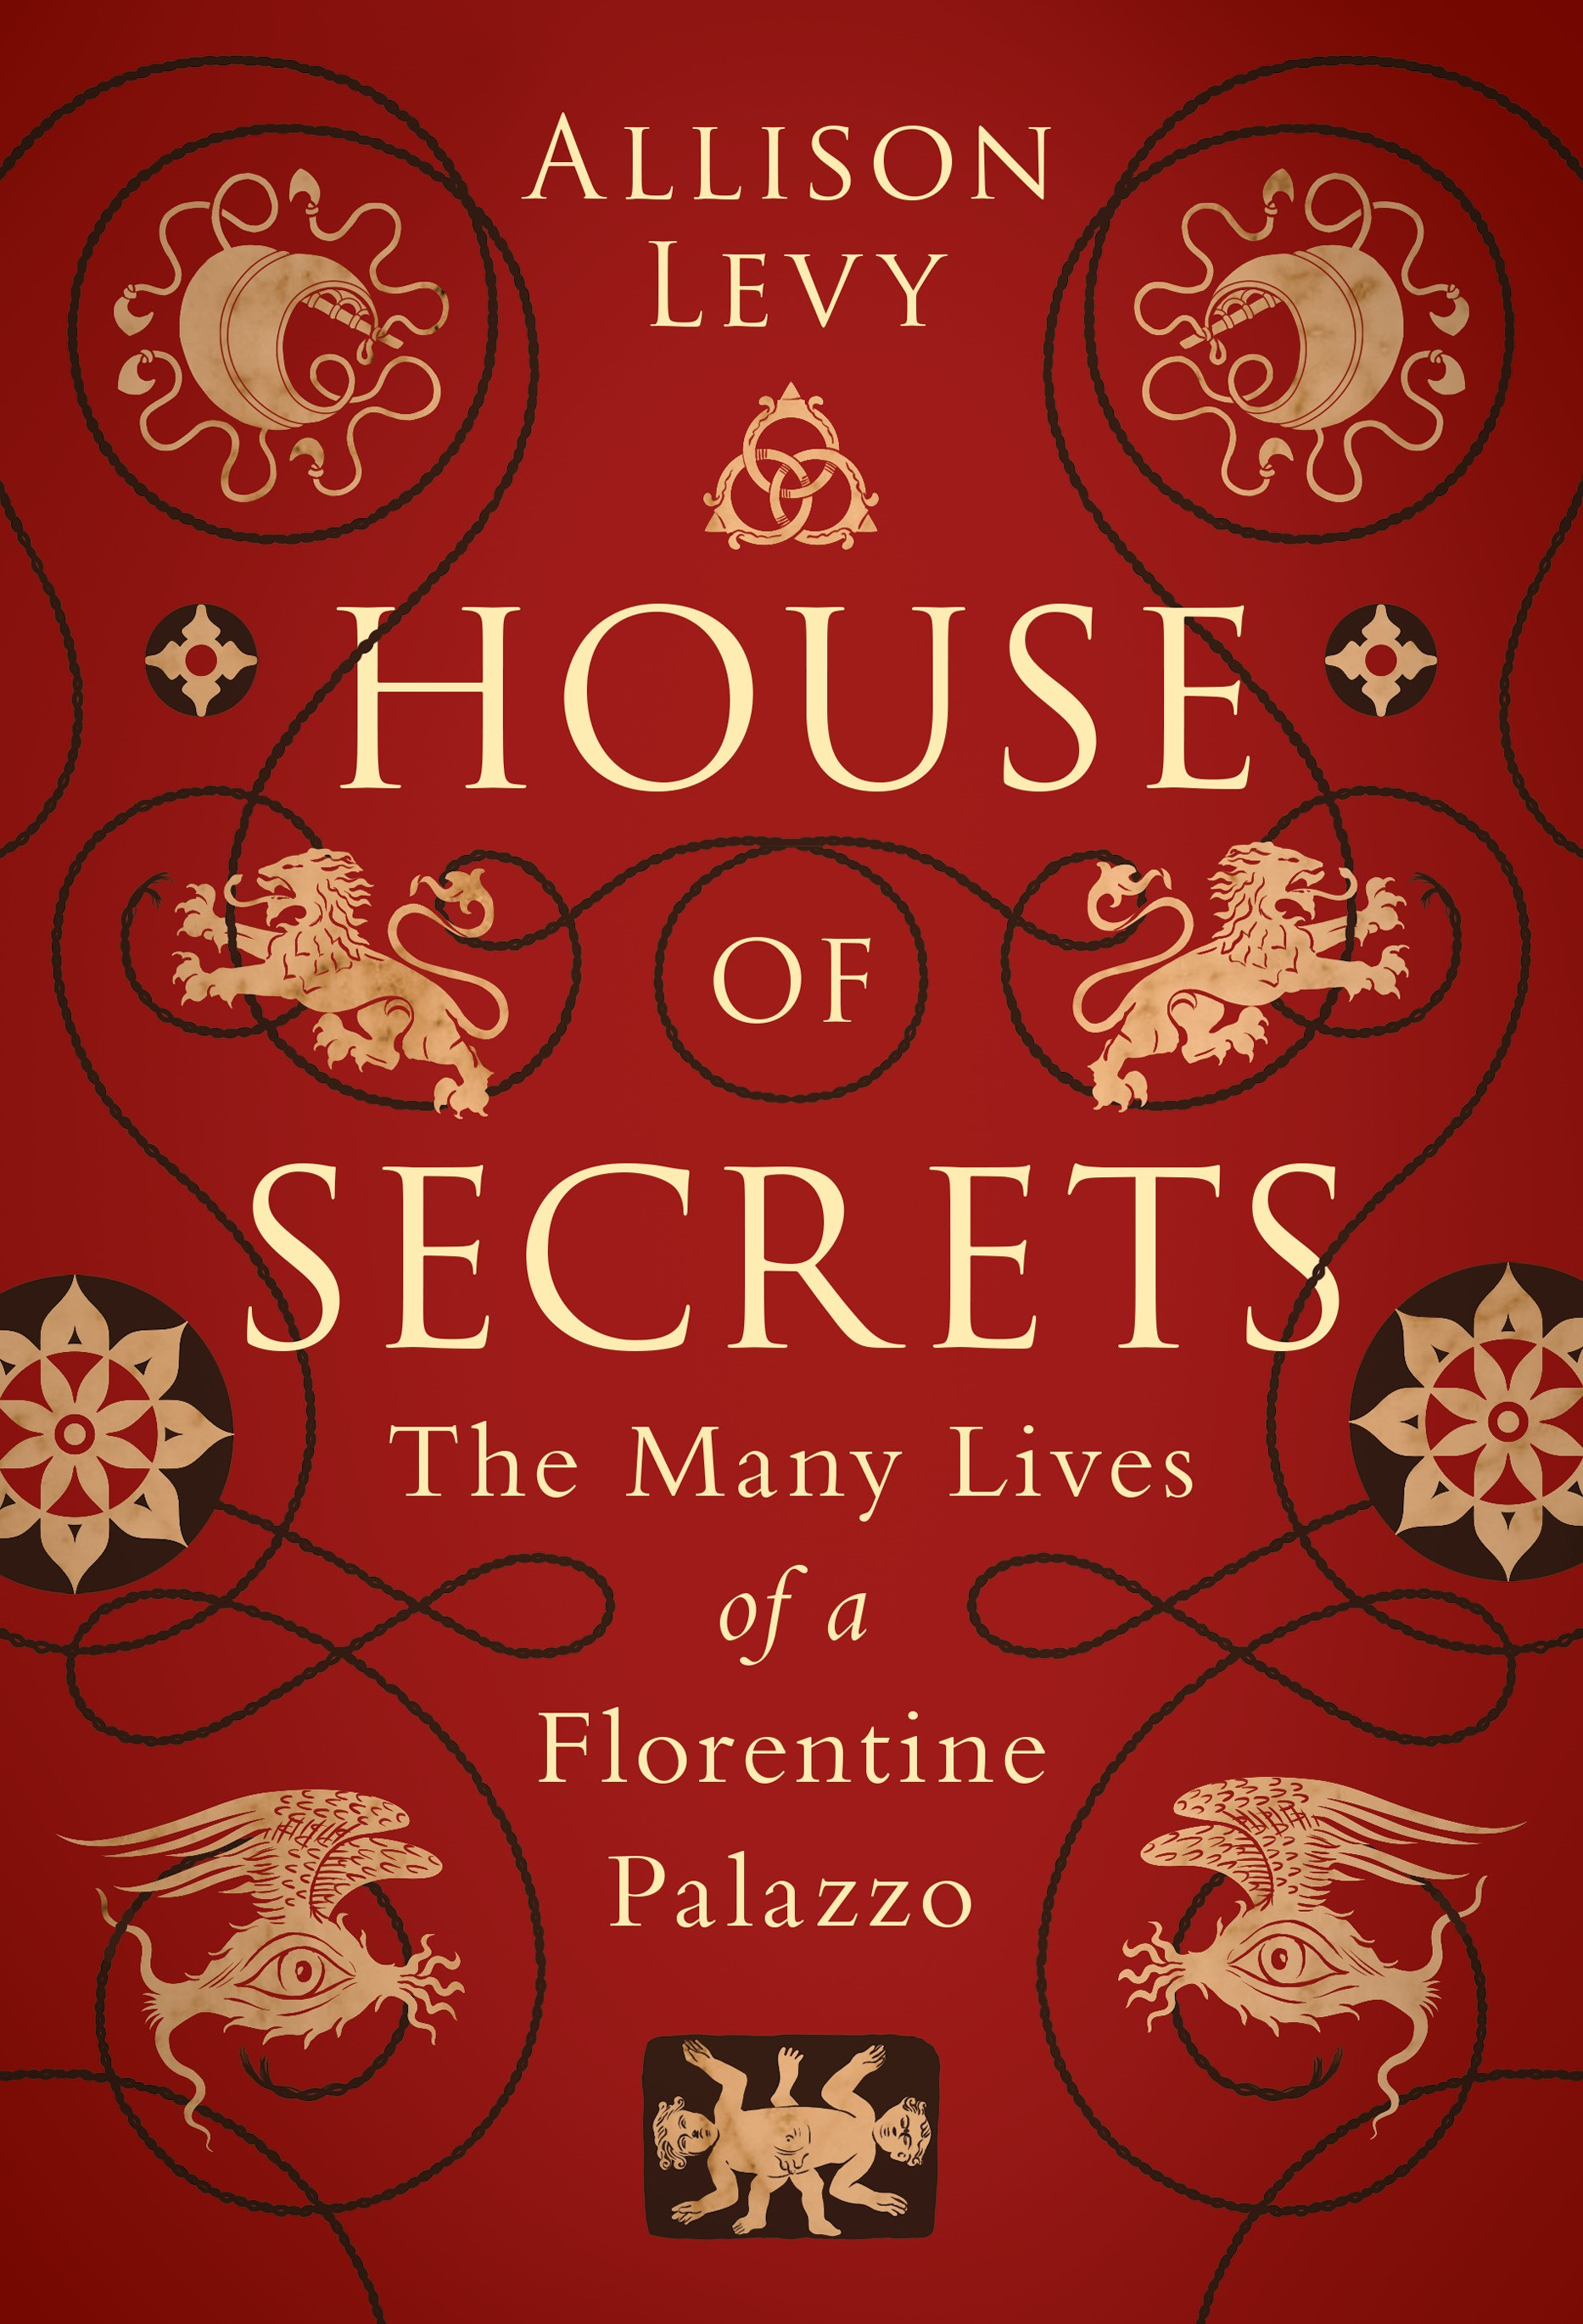 House of Secrets_final front high-res 16-11-18.jpg